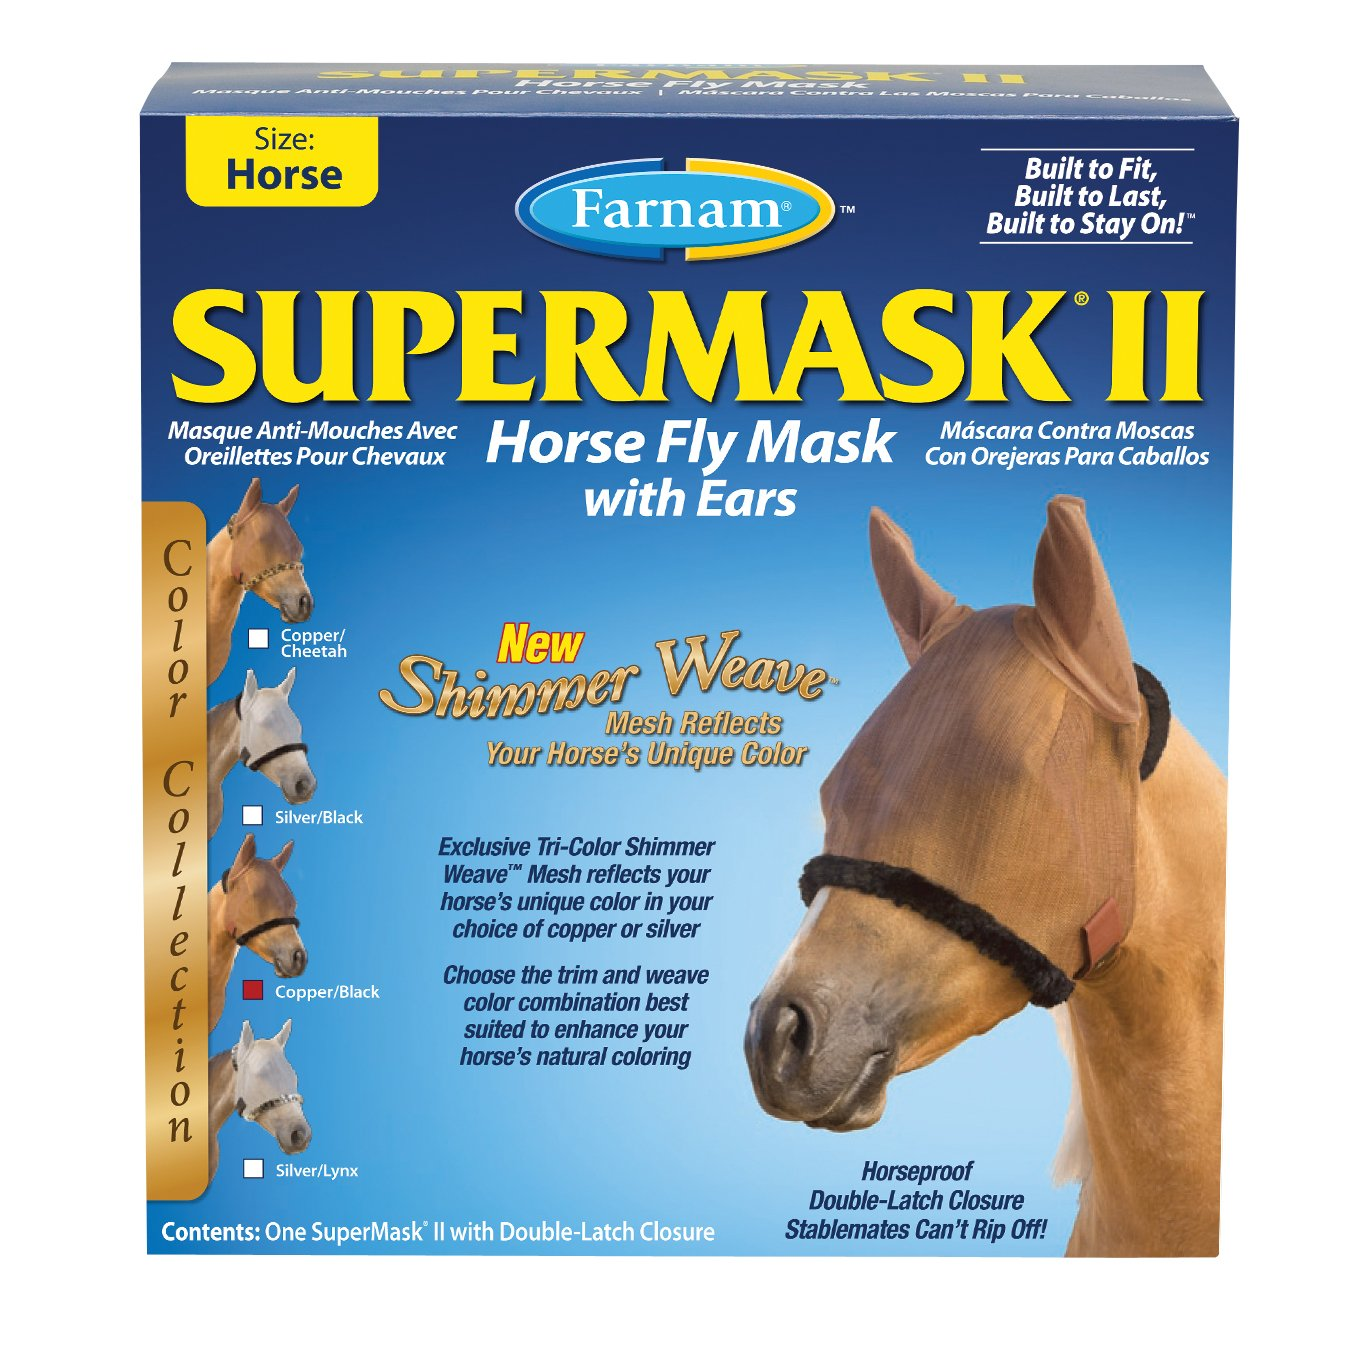 Farnam SuperMask II Shimmer Weave Horse Fly Mask with Ears, Horse size, Copper Mesh with Black Trim